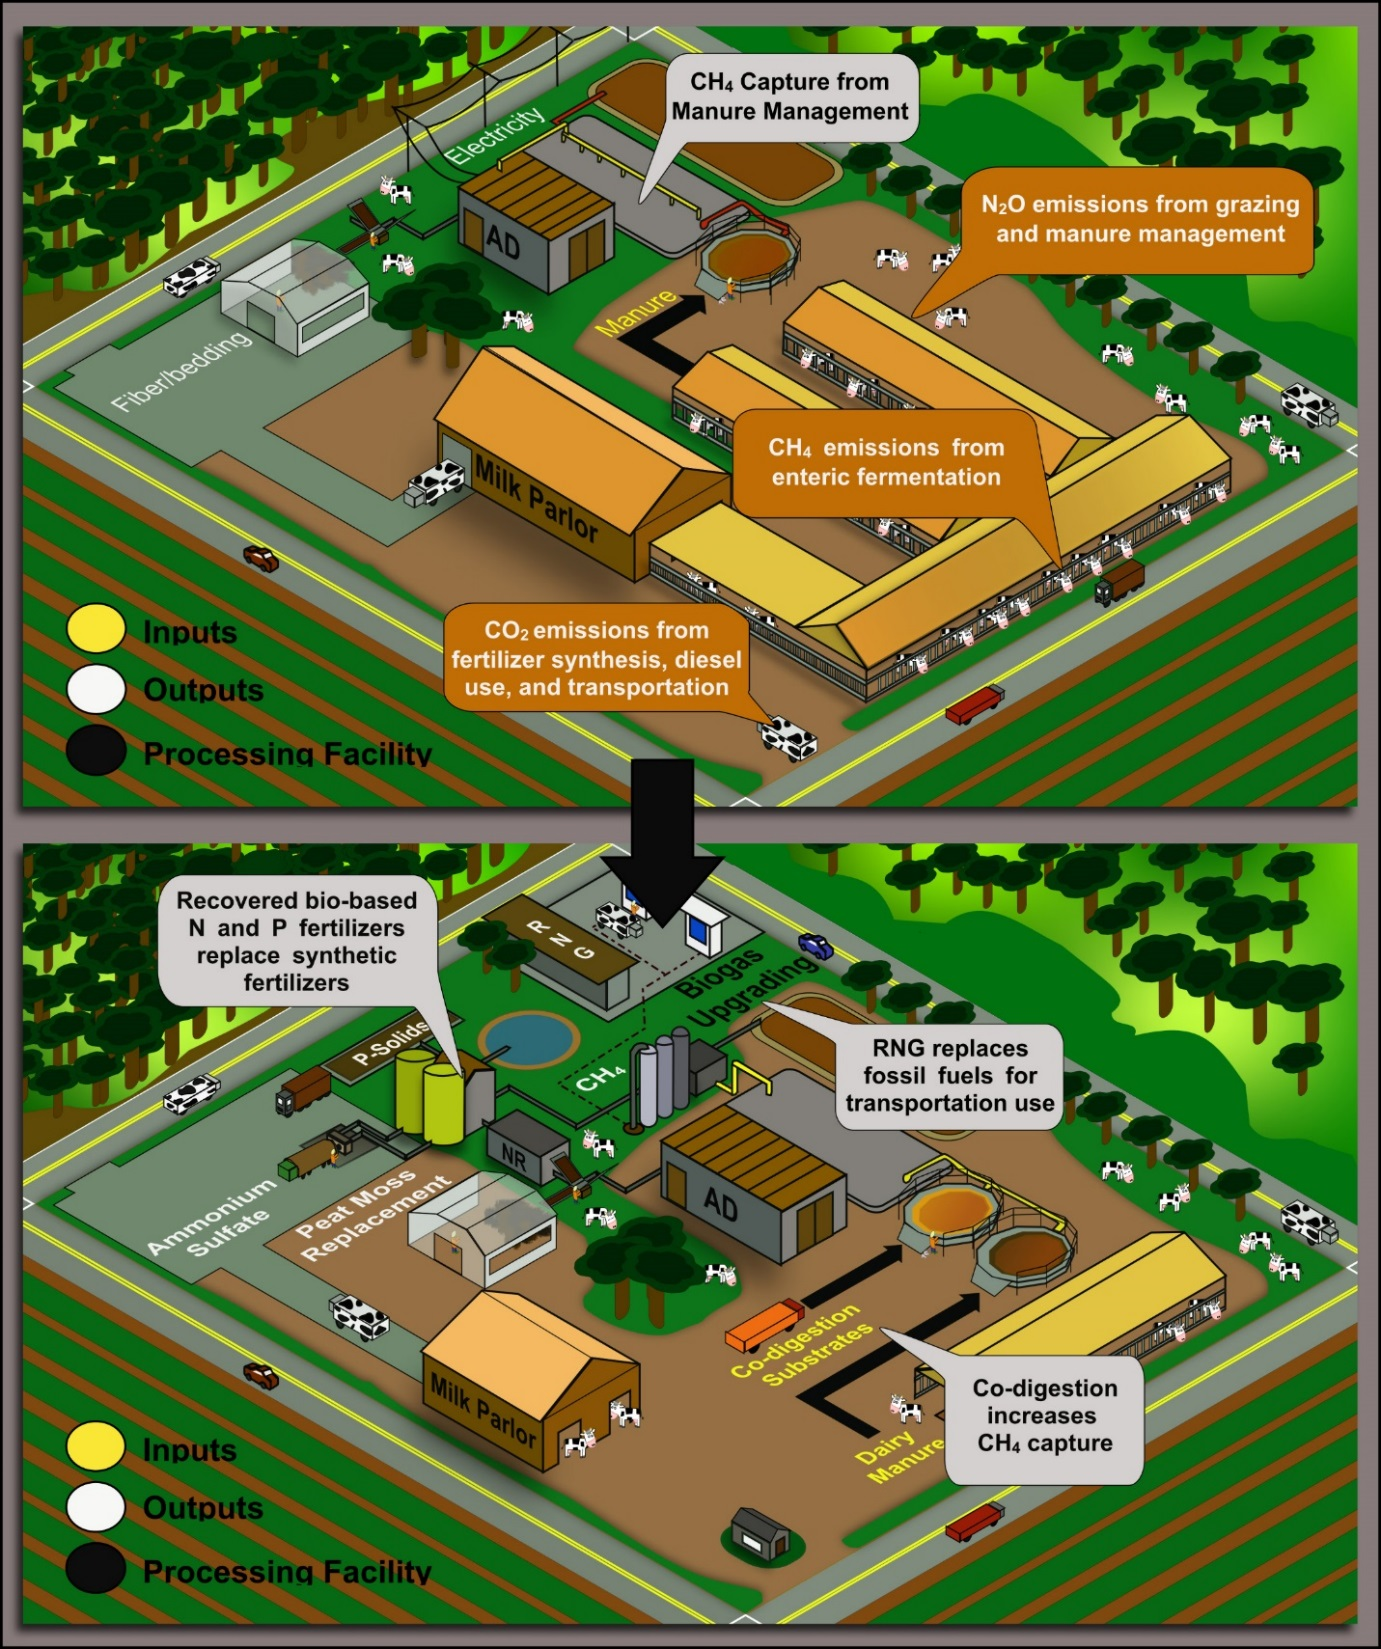 Figure 1: Dairy waste biorefinery (bottom image) can further reduce the carbon footprint with the addition of co-digestion, nutrient recovery (NR), and biogas upgrading (CNG) compared to a traditional dairy digester (top image) (note: dairy herd size appears reduced in lower graphic due to limitations of artistic rendering; assume same herd size)